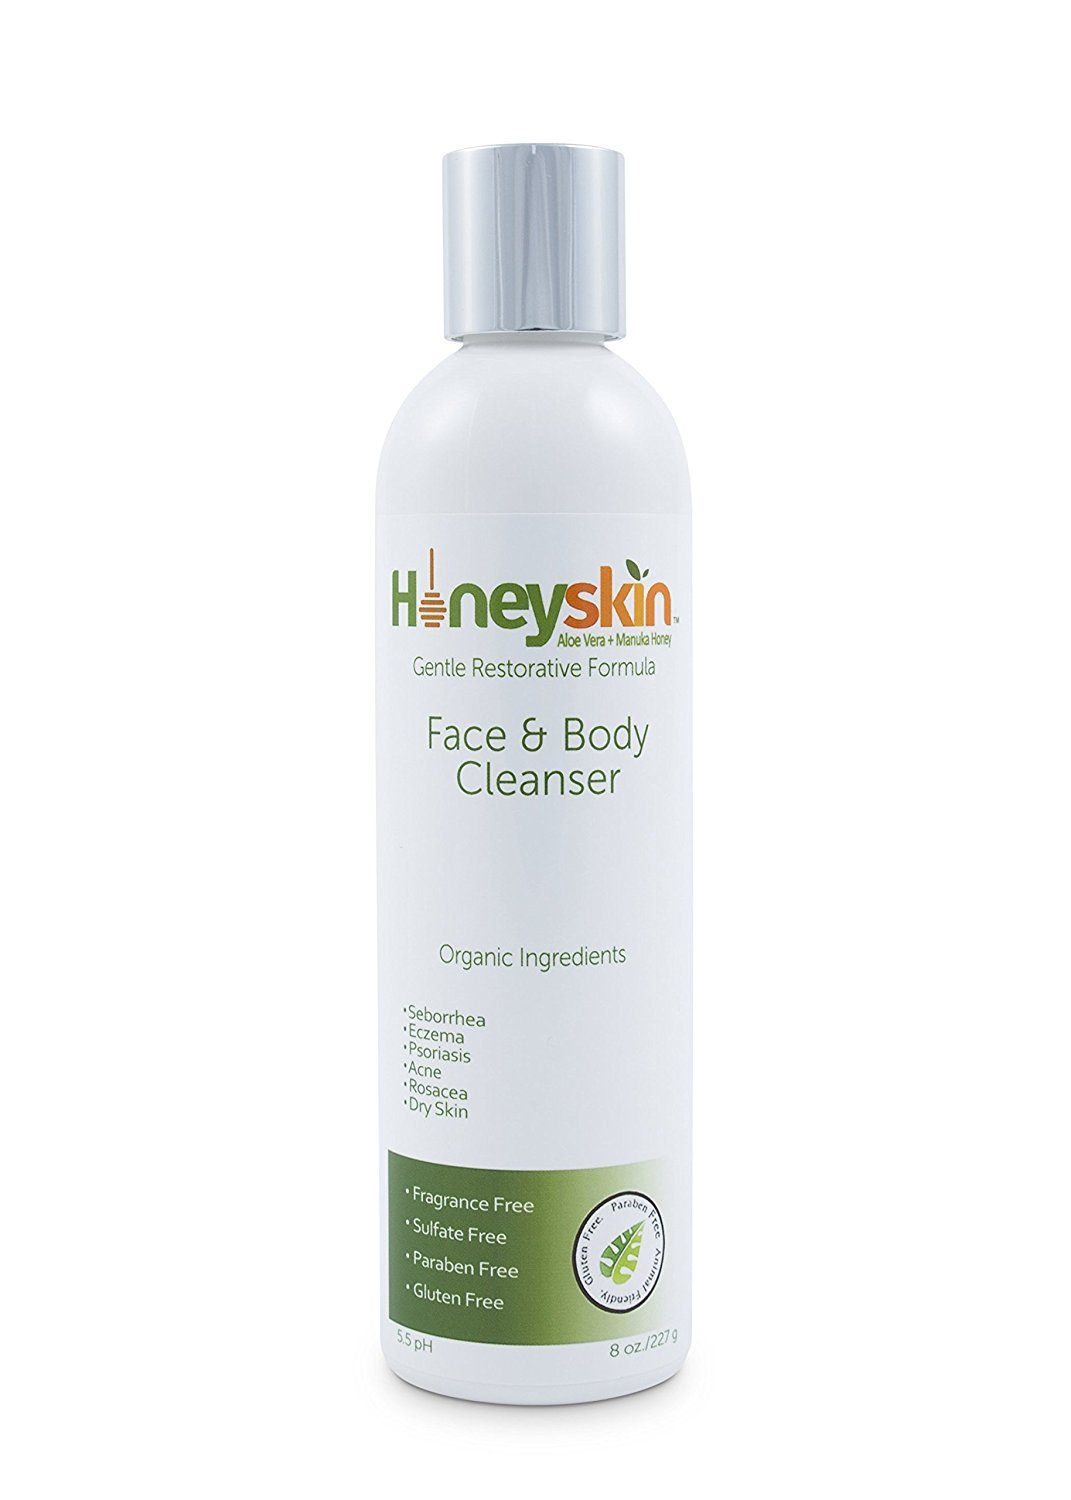 Face & Body Wash - for Sensitive & Dry Skin - Treatment for Eczema, Rosacea, Psoriasis, Blemish & Acne - with Manuka Honey & Aloe Vera - Anti Aging & Anti Bacterial Formula (4oz) Honeyskin Organics n/a